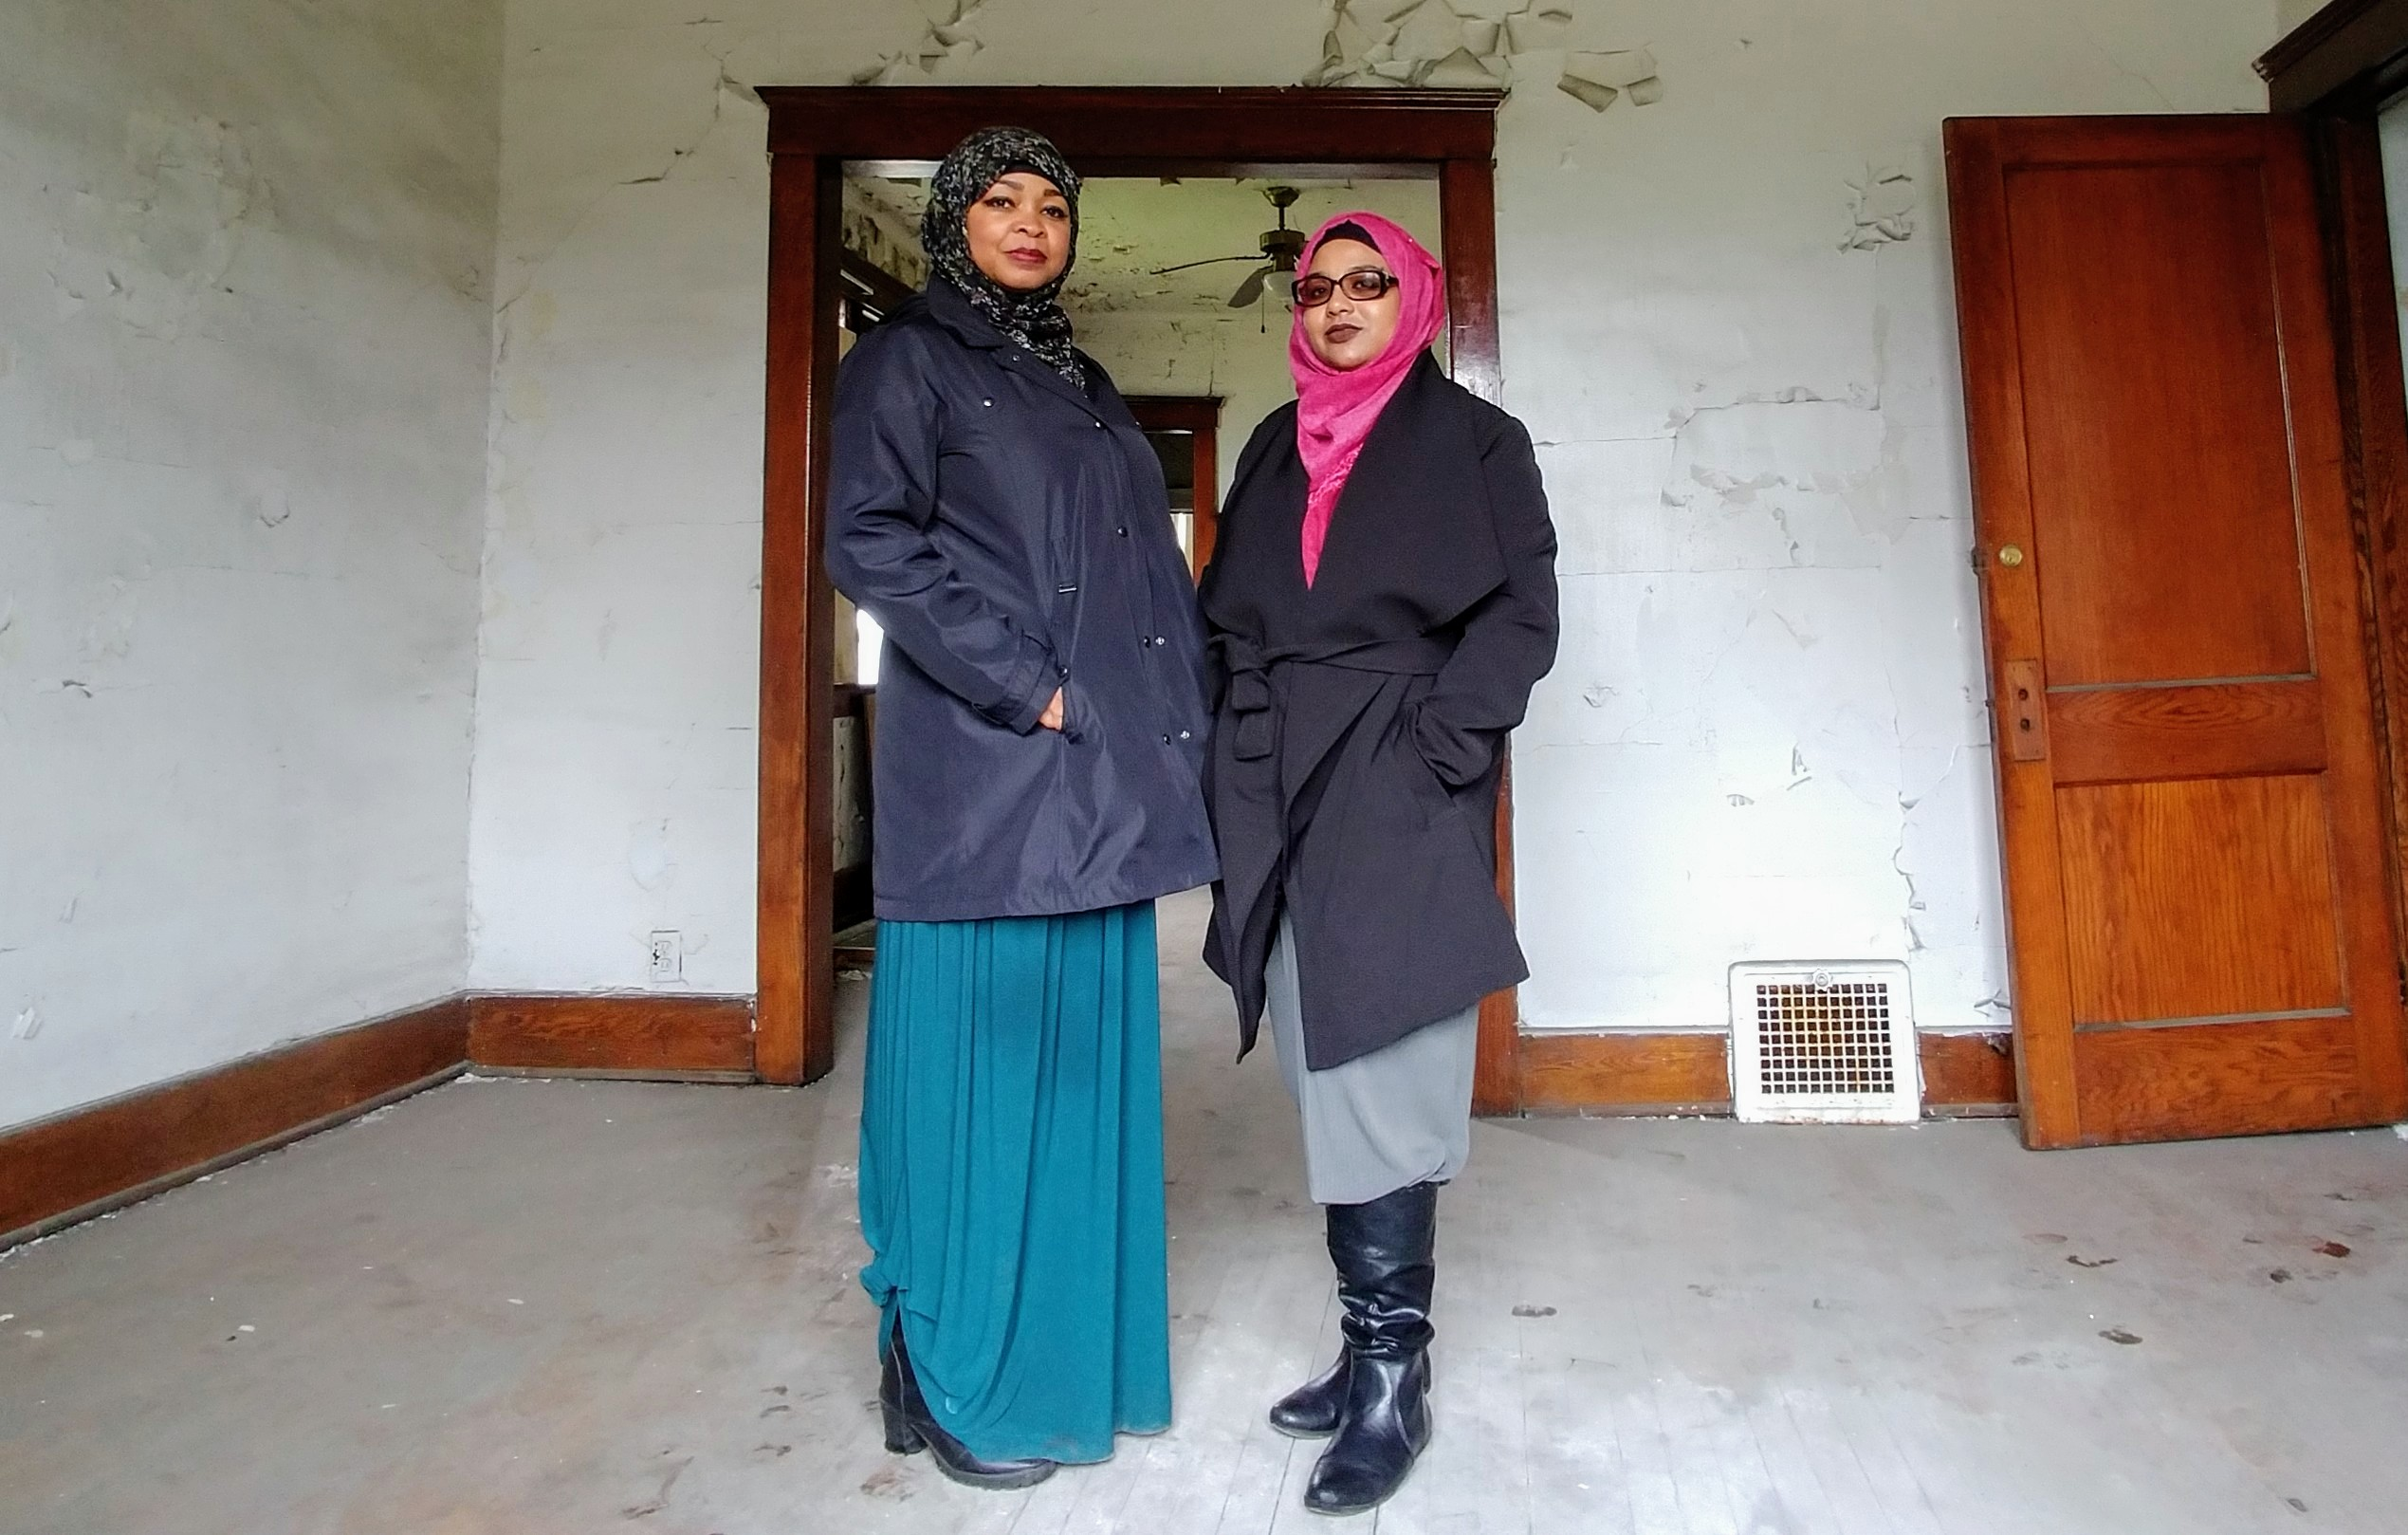 Co-Founders Margari and Namira at the ARCHouse